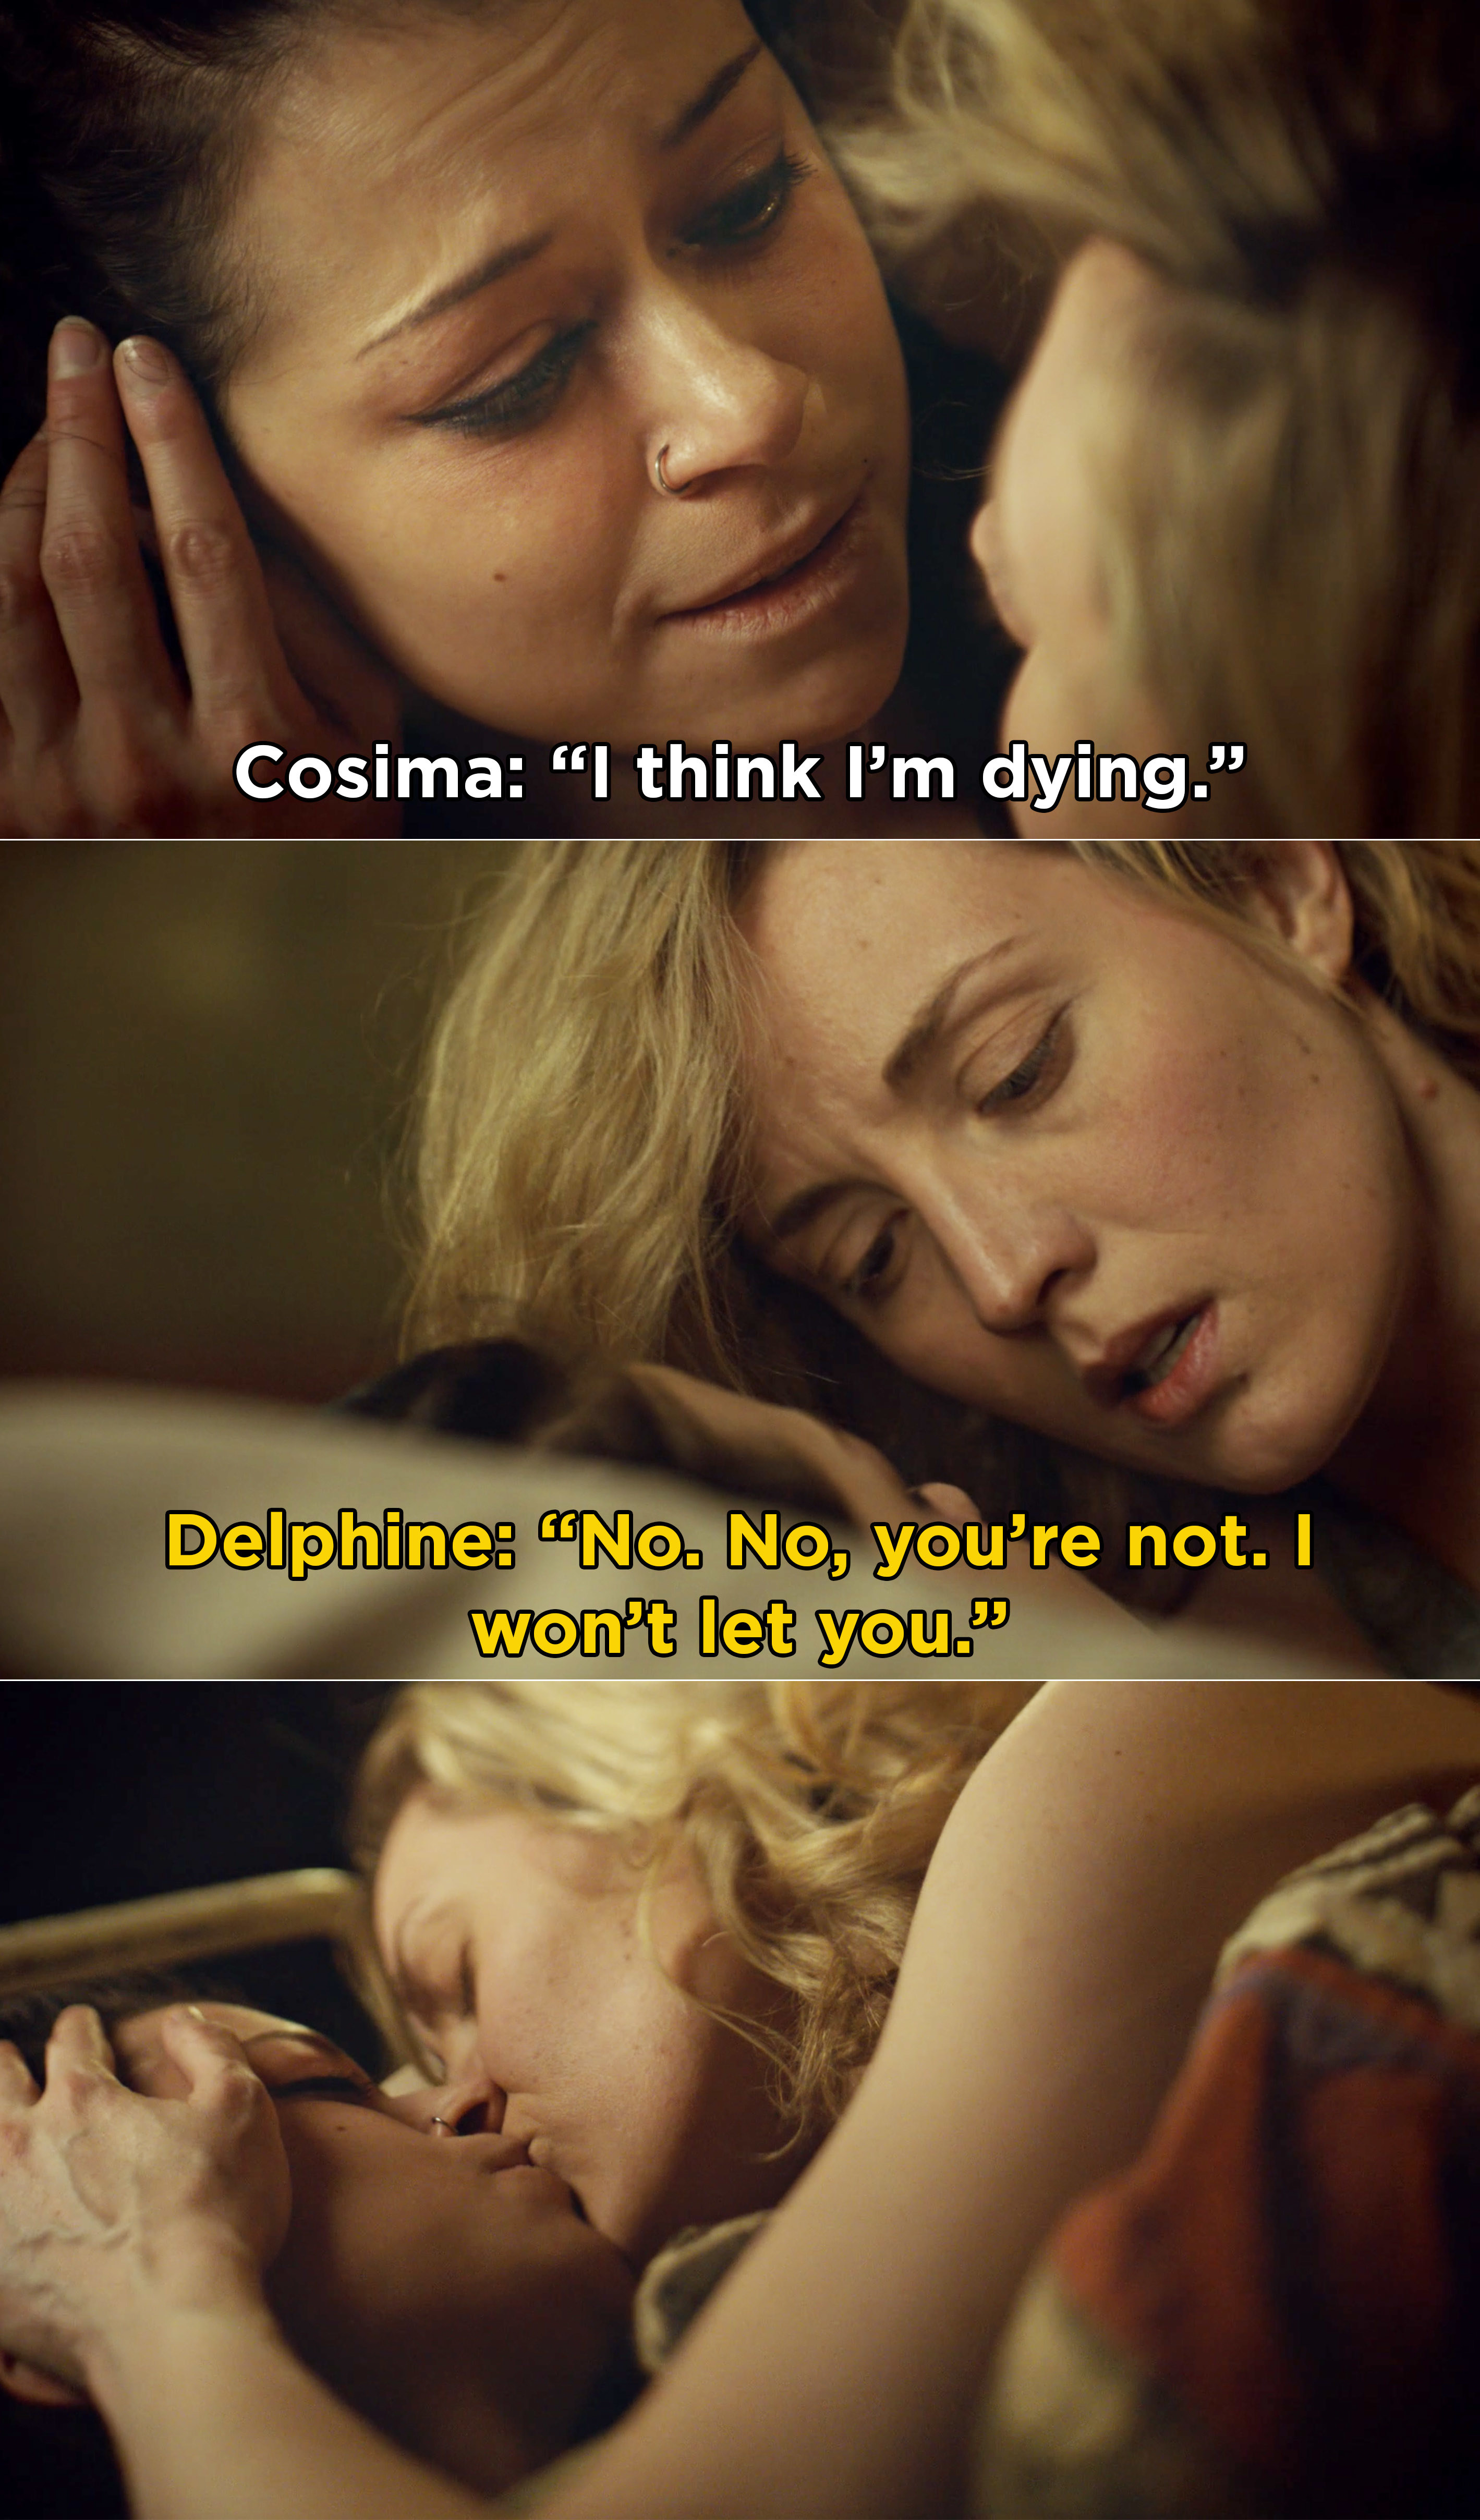 Delphine kissing Cosima and saying that she won't let her die